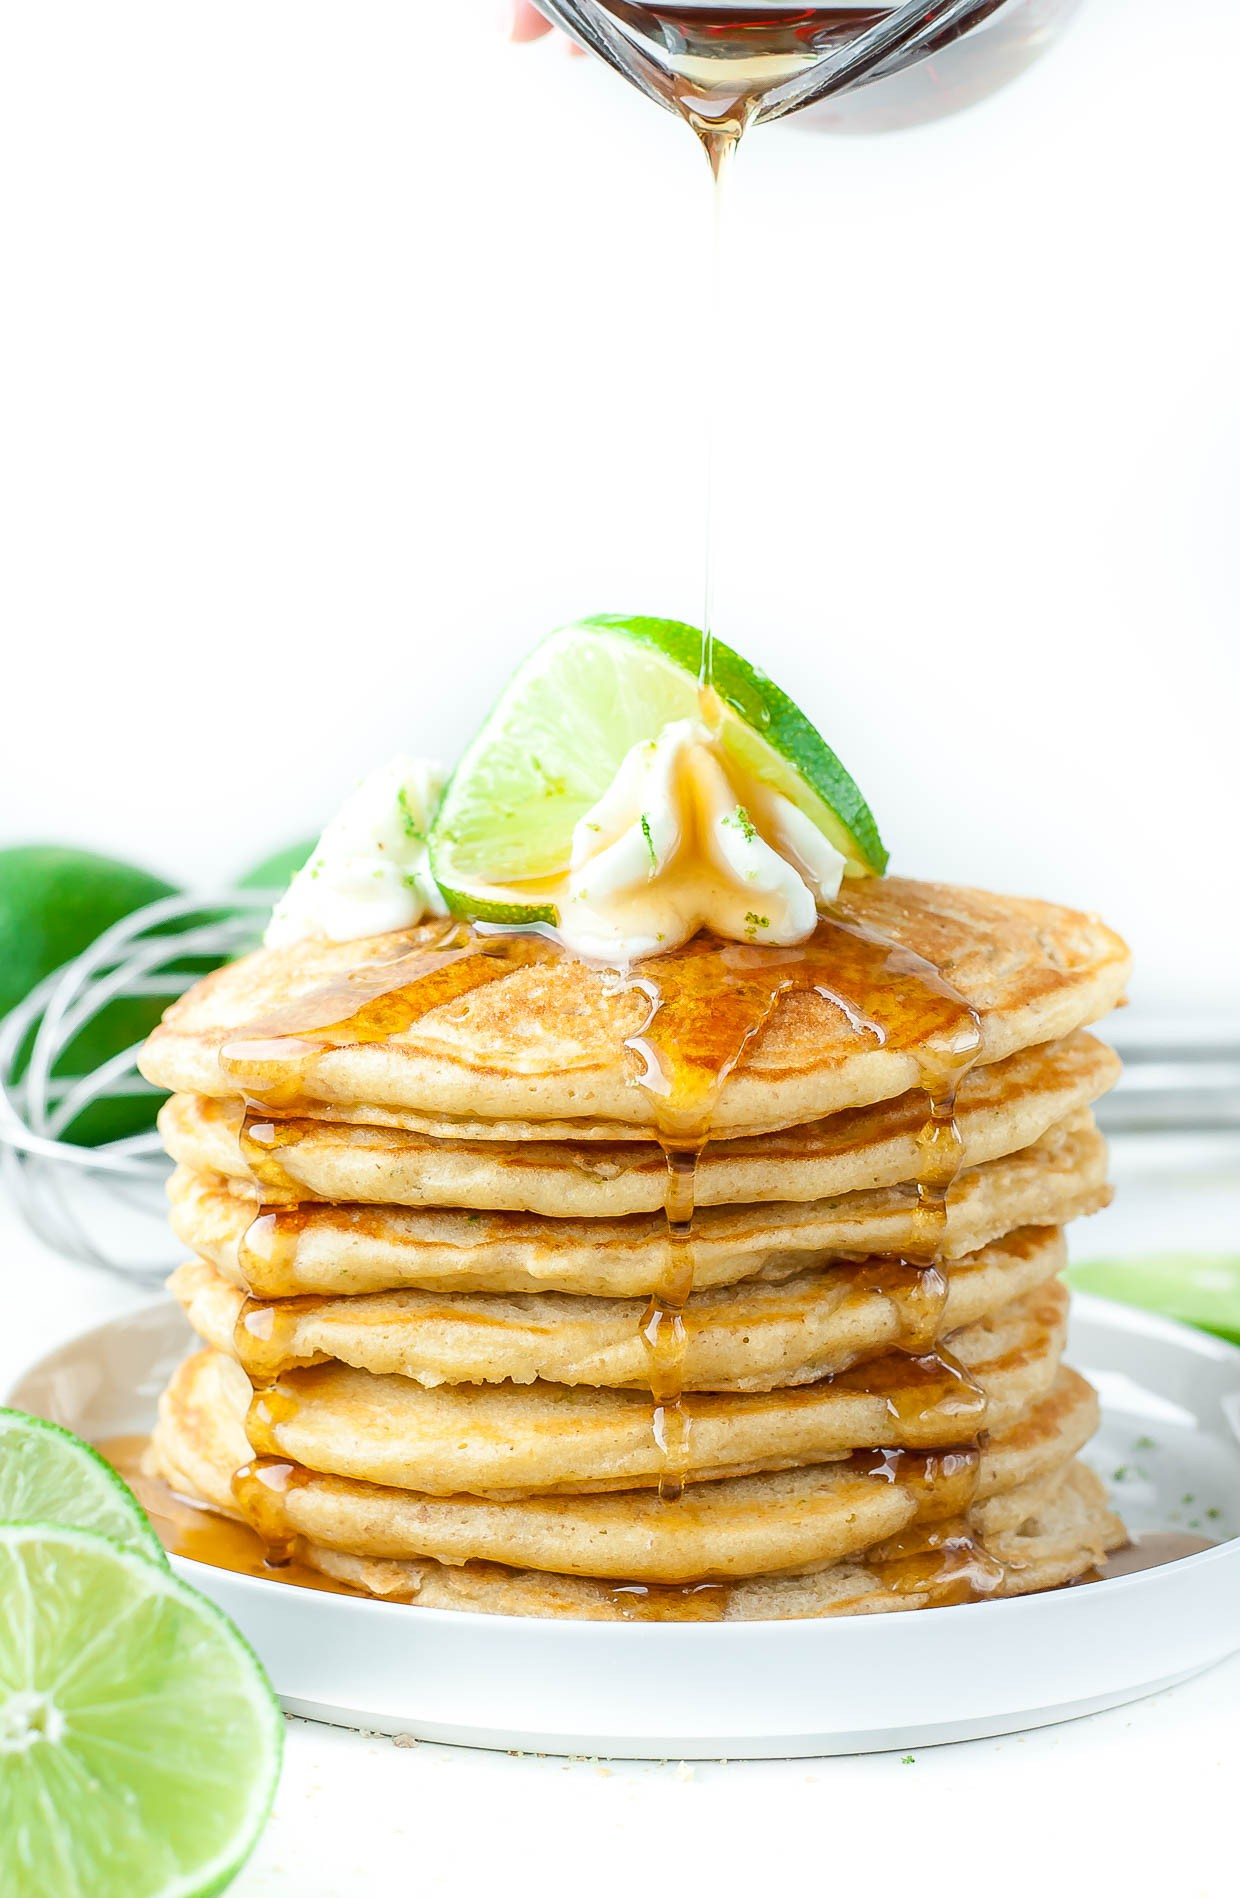 homemade-key-lime-pie-pancakes-recipe-peasandcrayons-2228.jpg